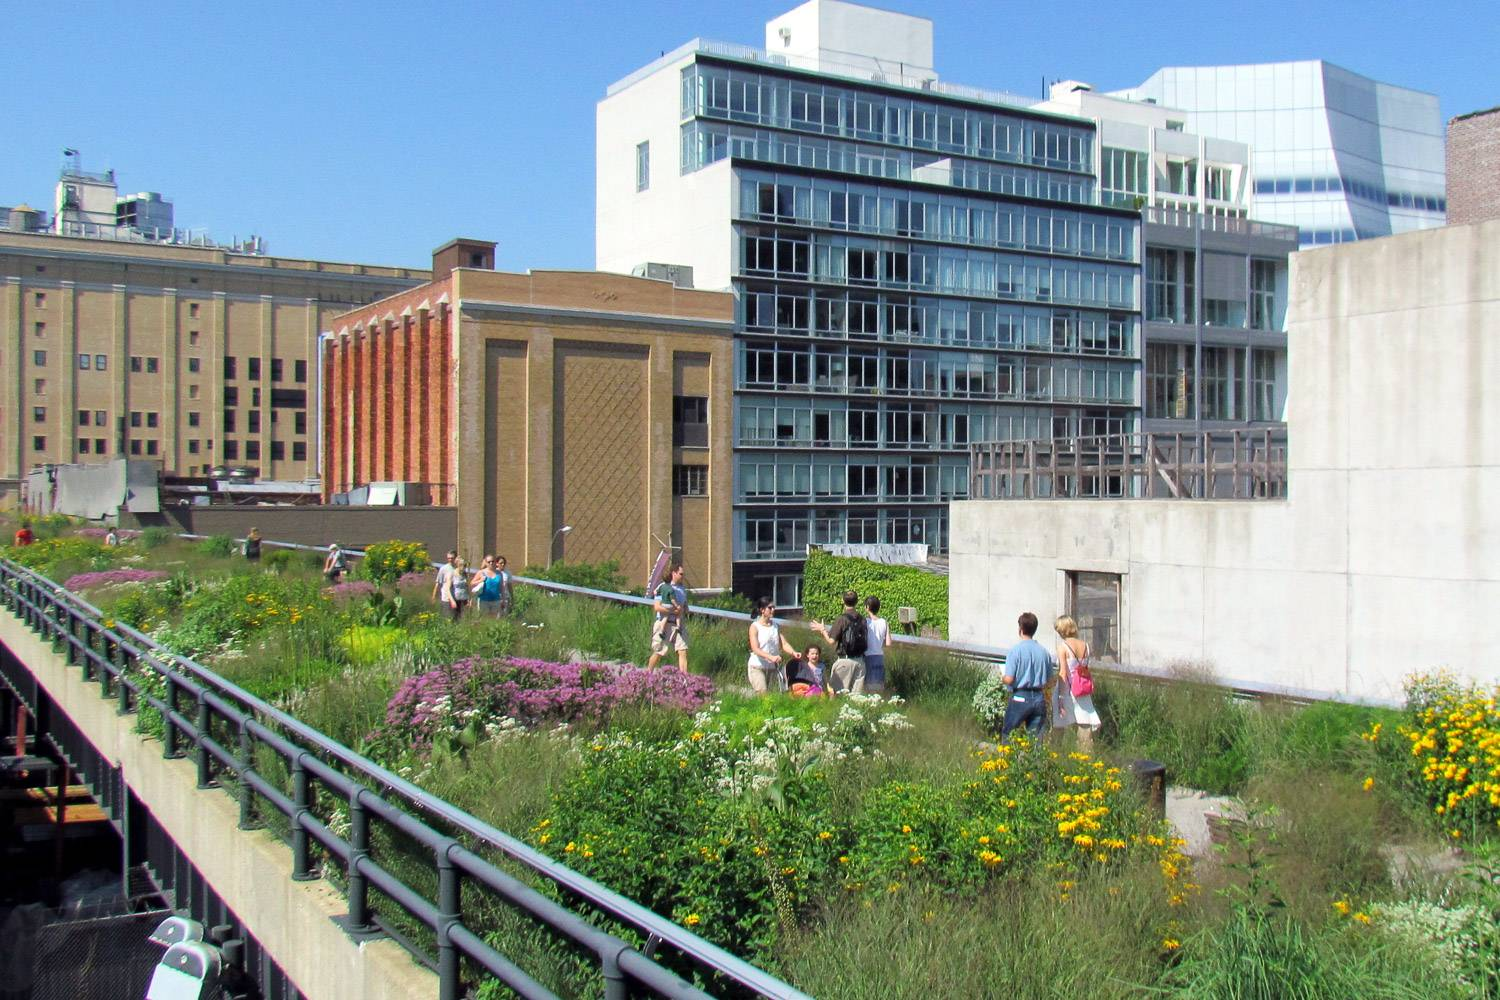 Image of the elevated railroad tracks planted with plants and flowers that make up Manhattan's Highline Park